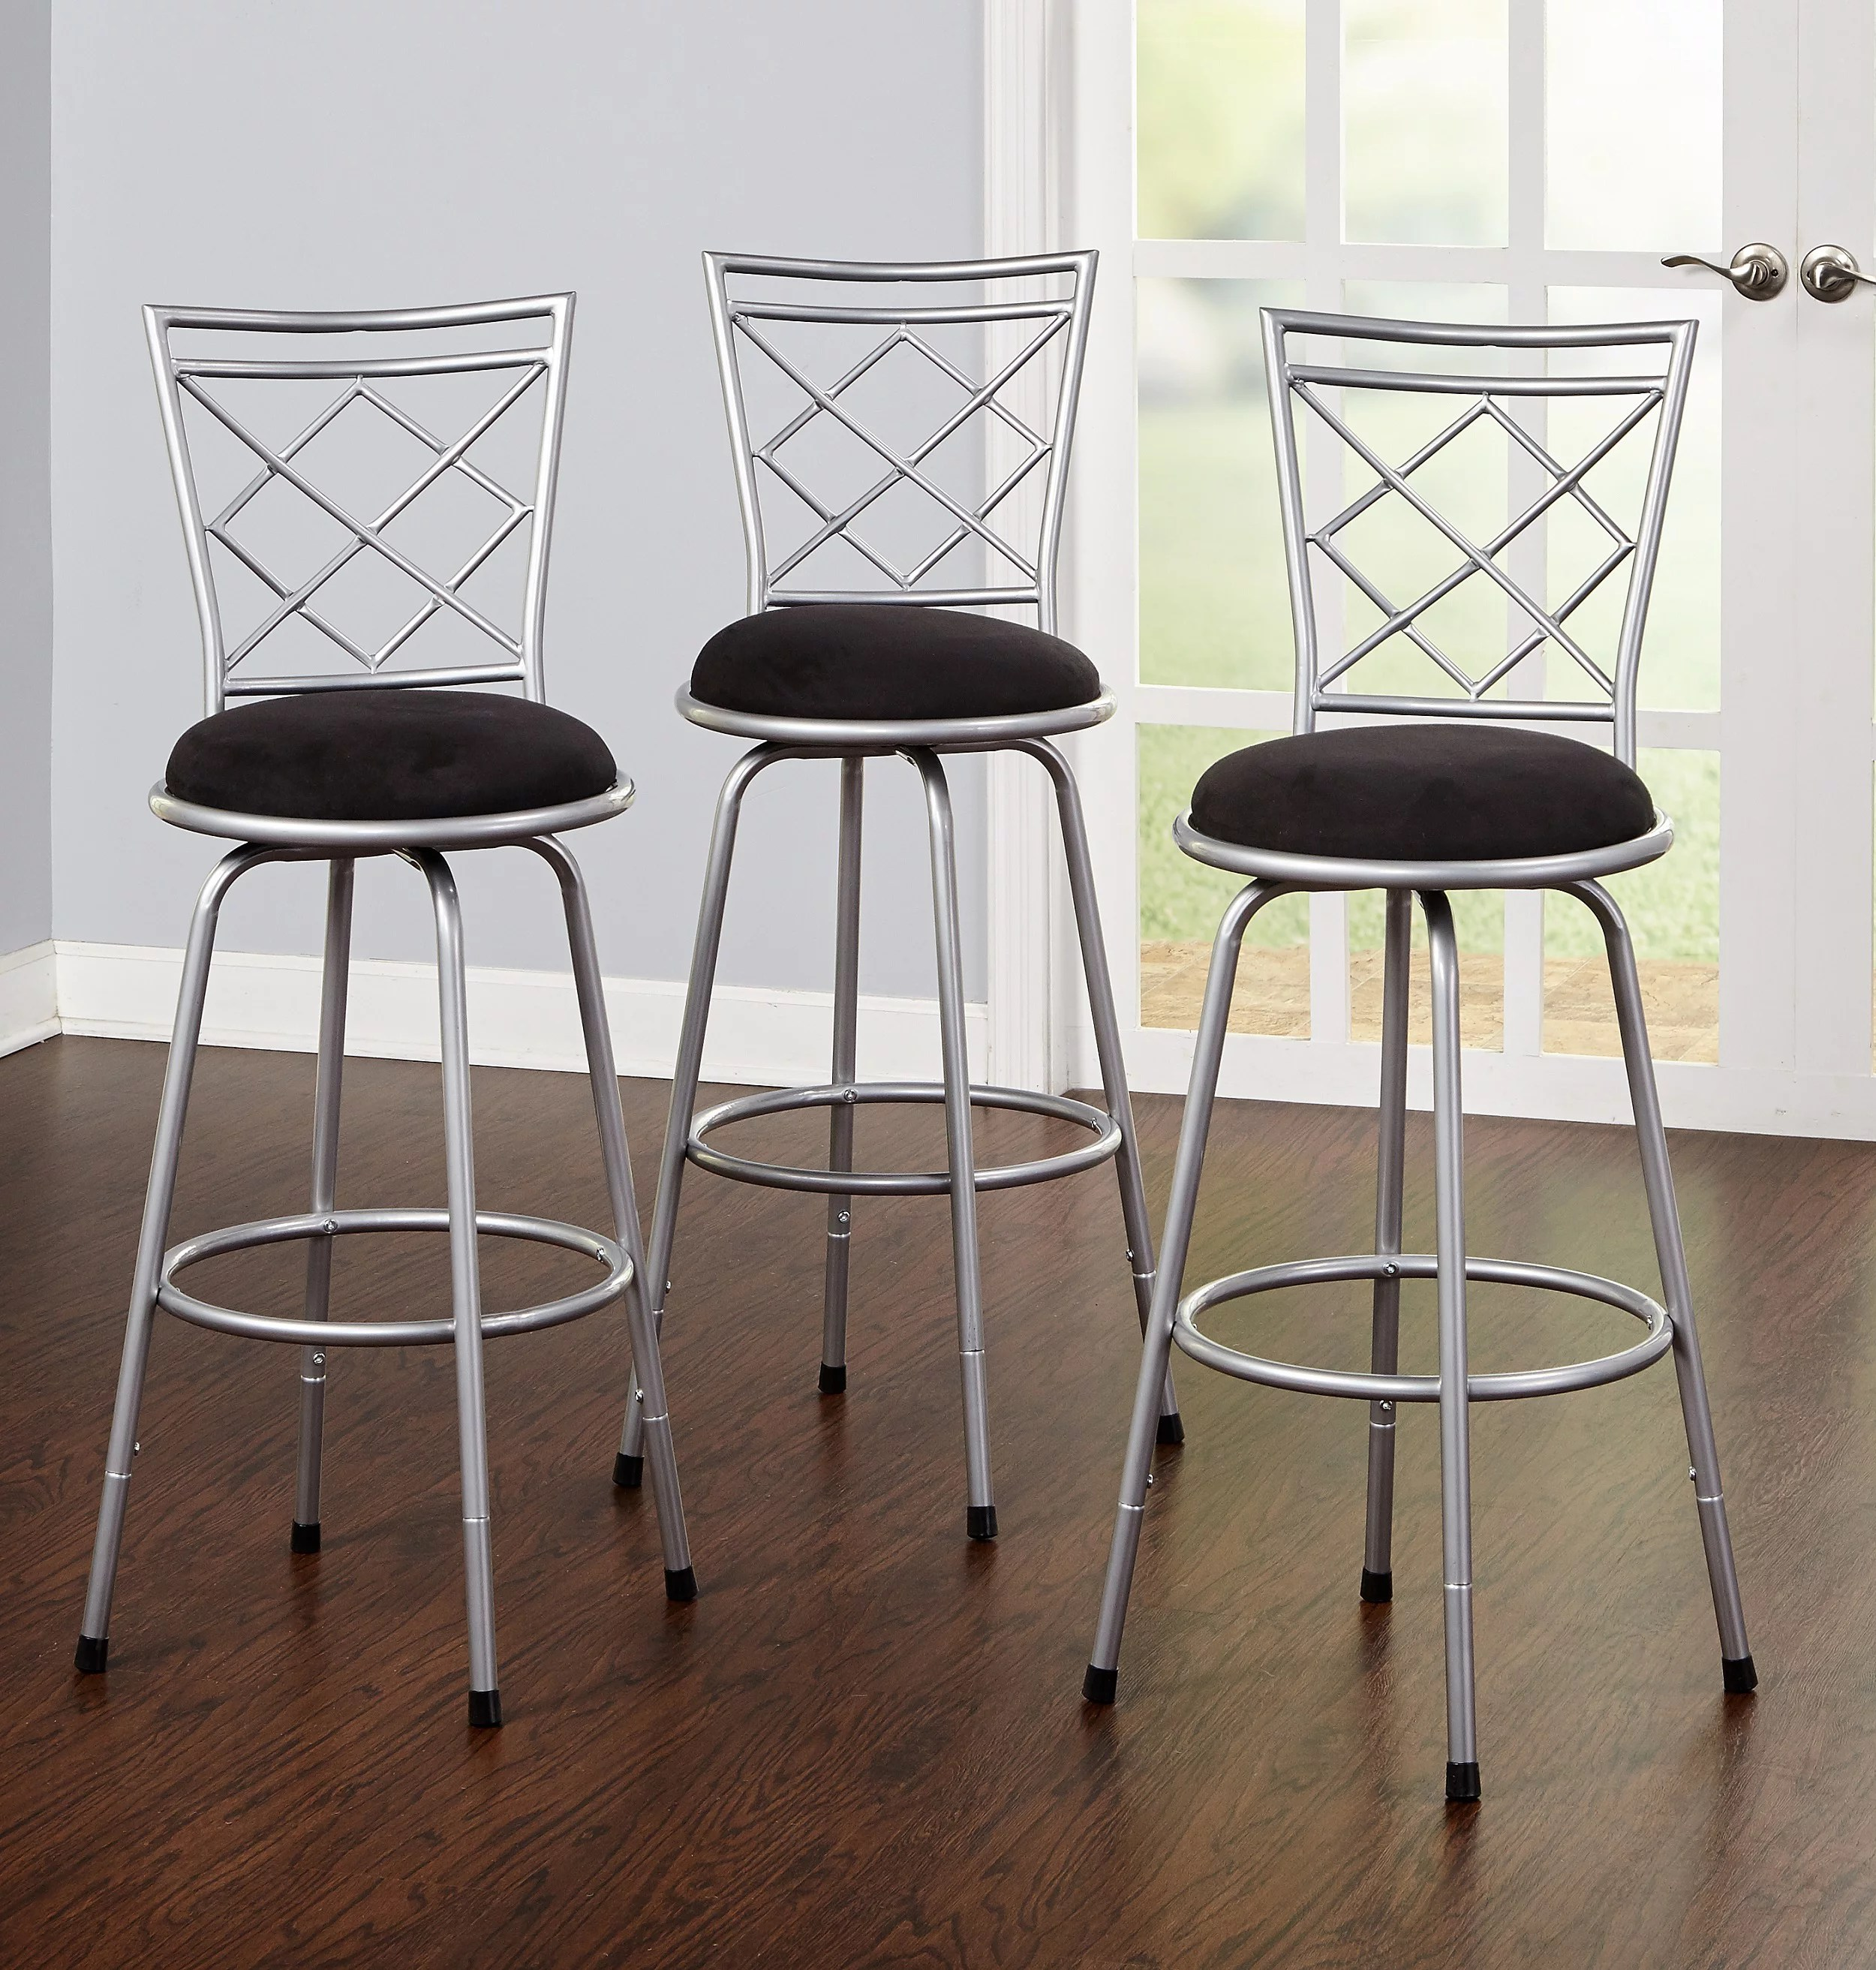 Bar Stools Set Of 3 High Seat Chairs Adjustable Swivel Kitchen Counter Chair EBay